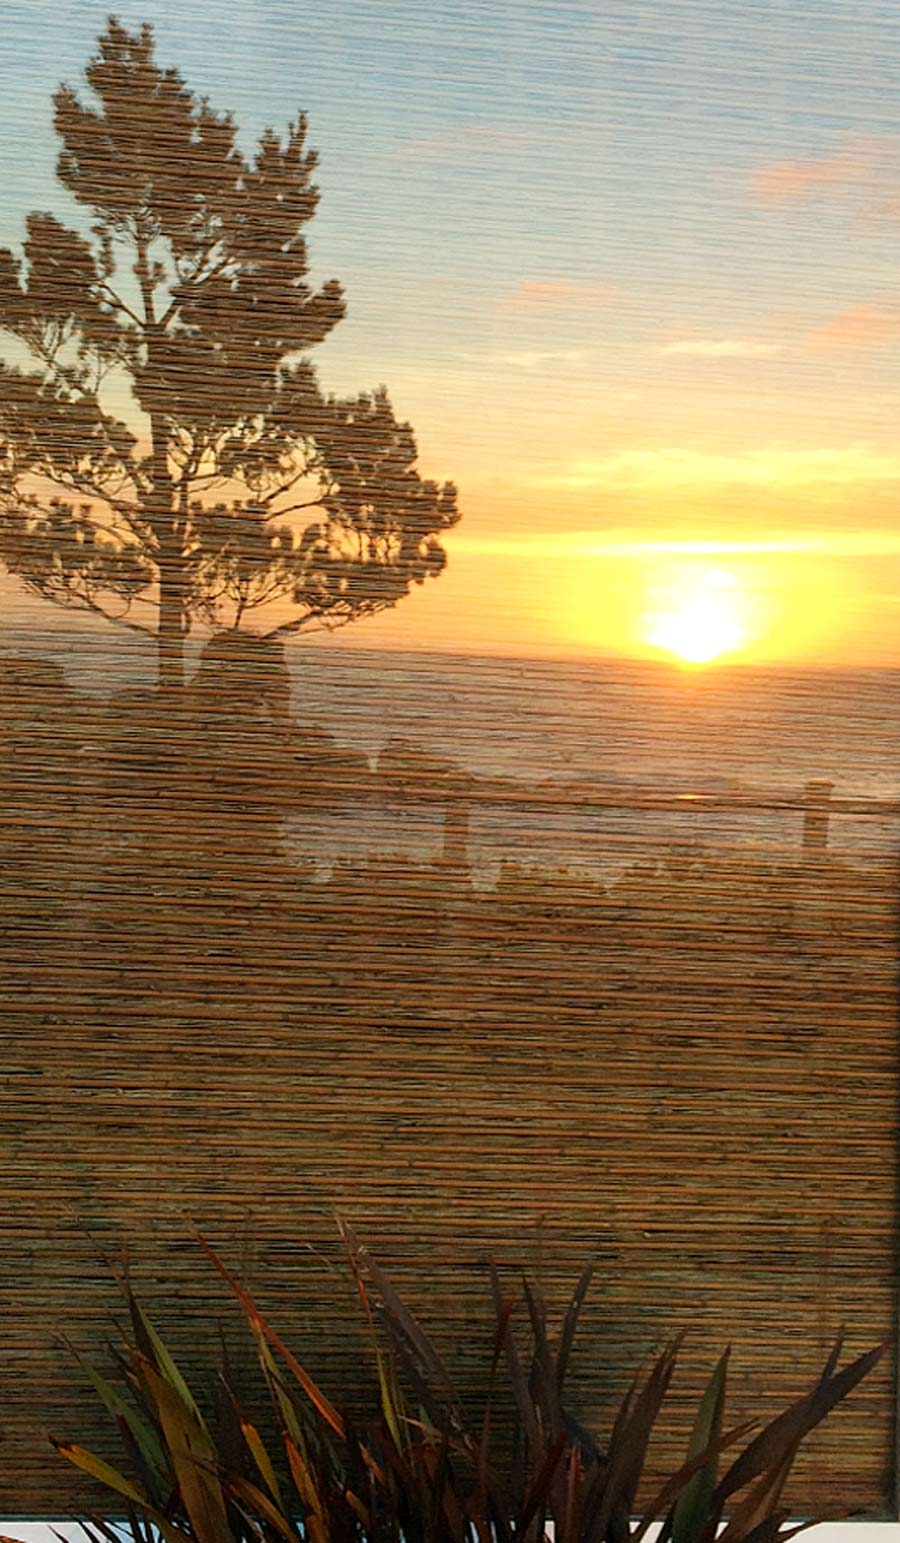 sunset-reflection-whale-cove-2015